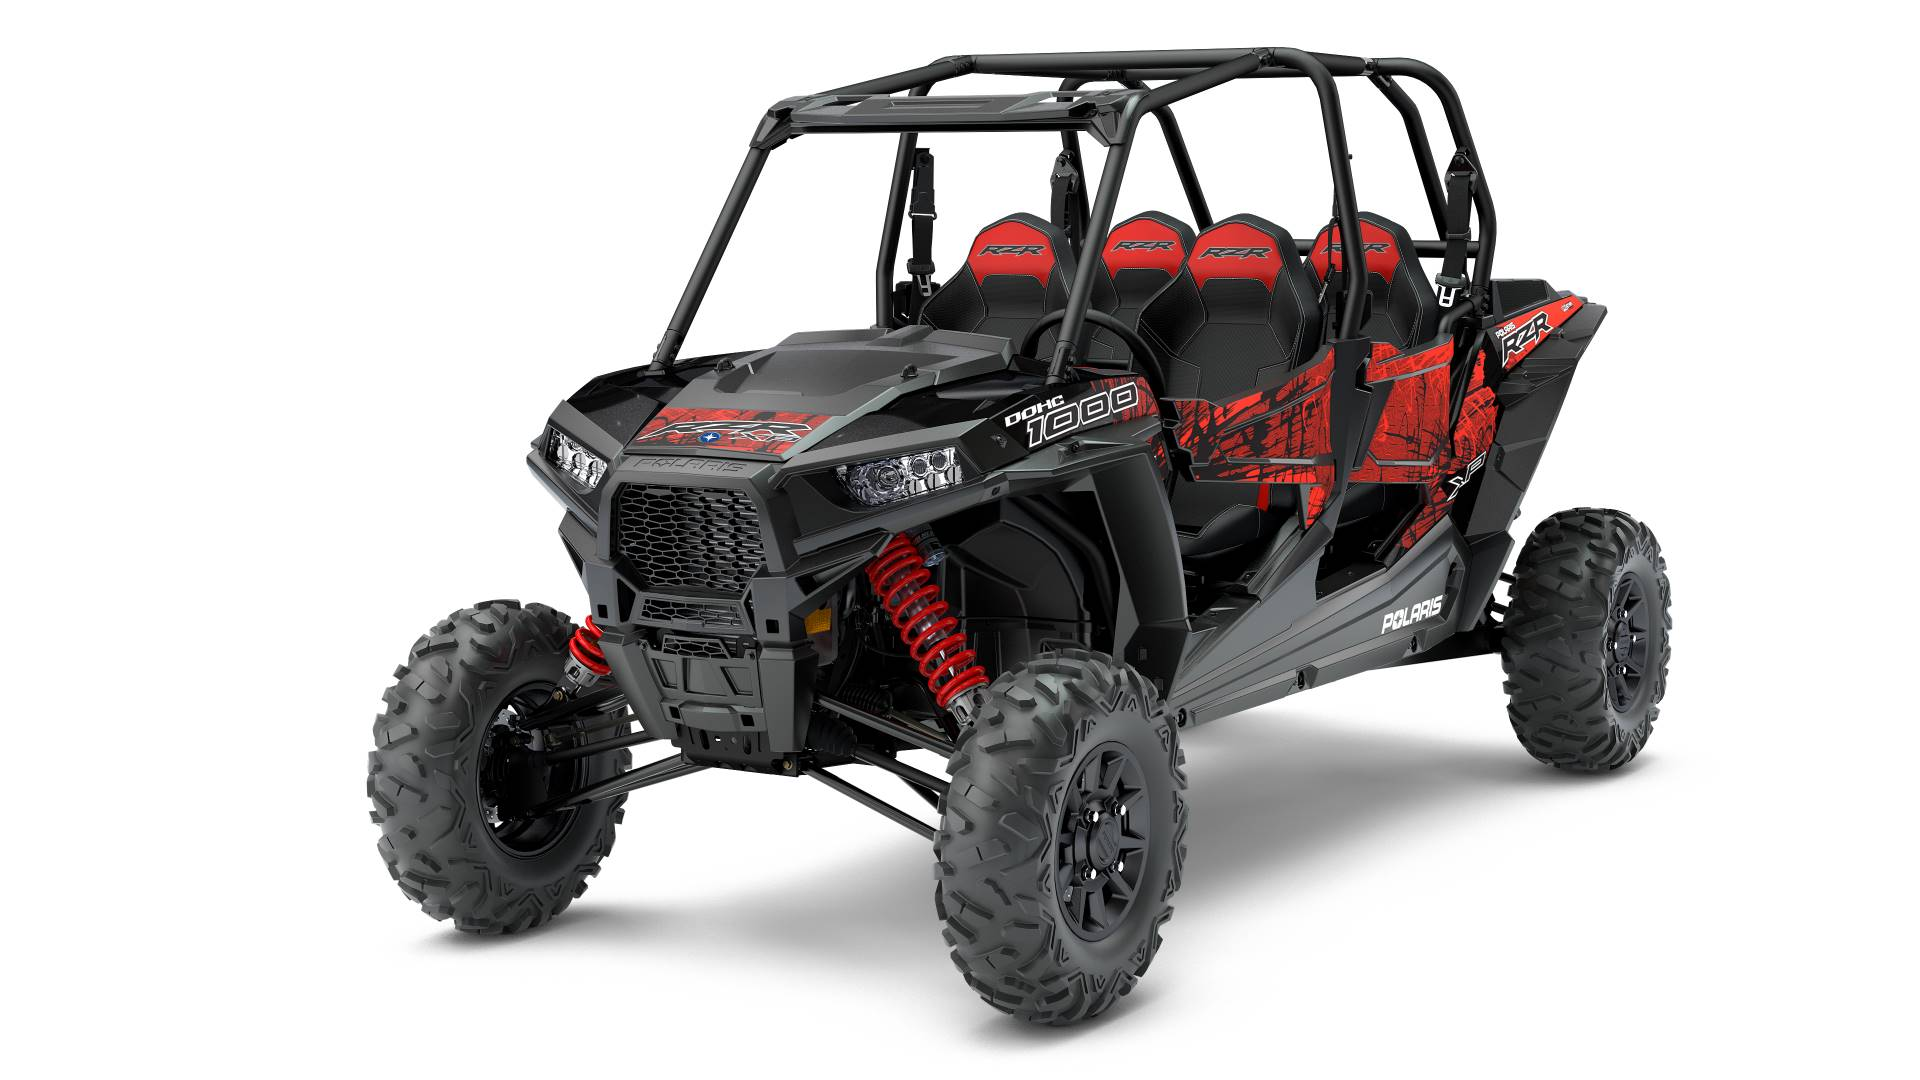 2017 Polaris RZR XP 4 1000 EPS for sale 65962